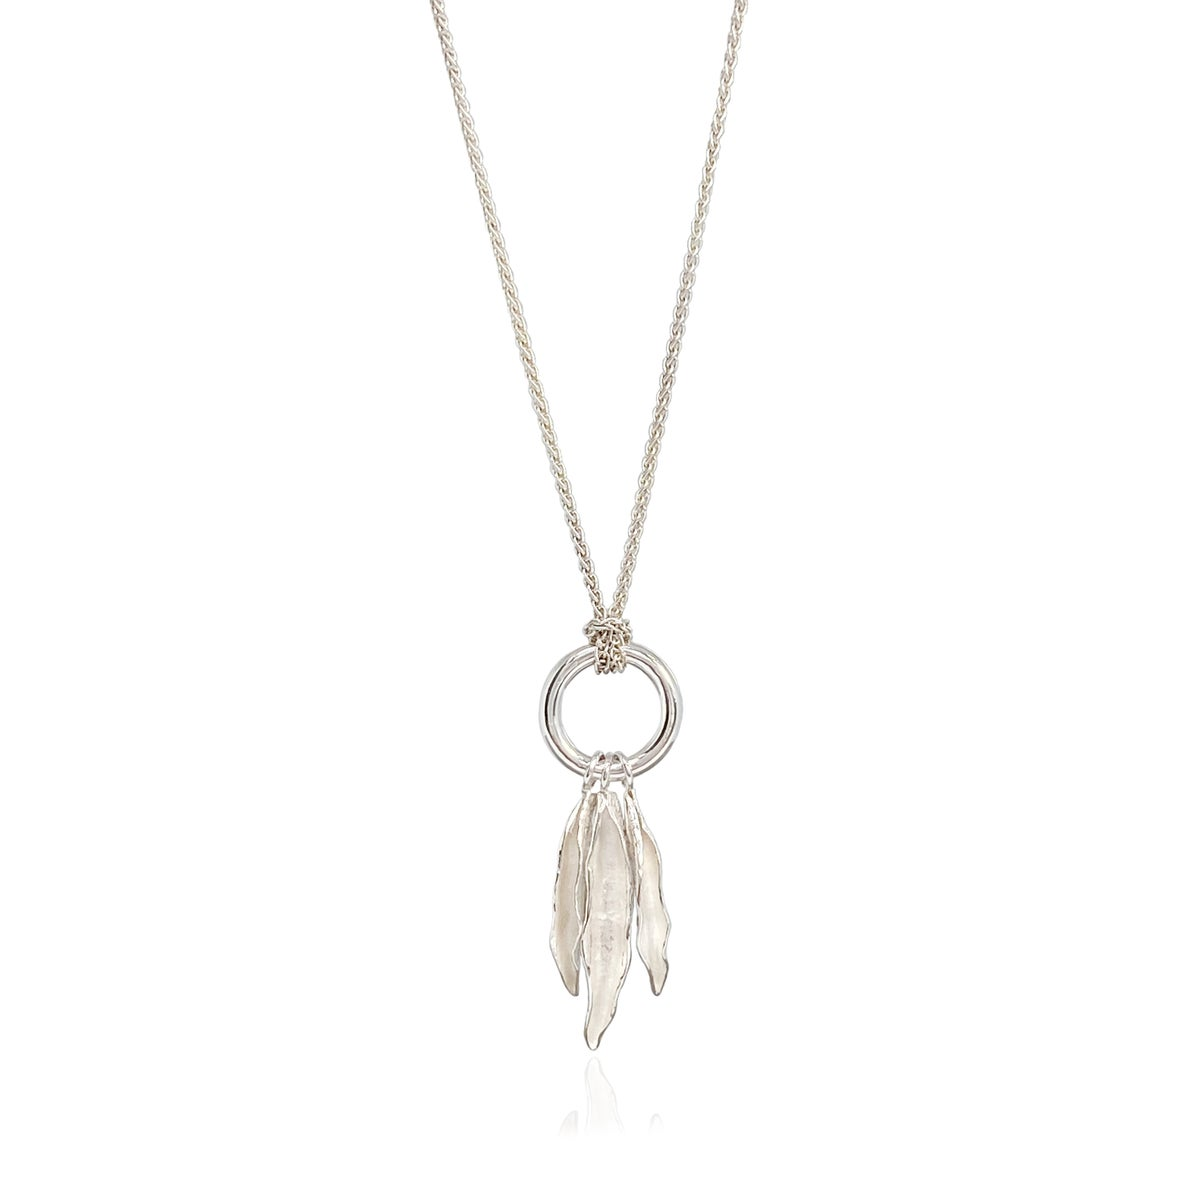 Image of Silver seedpod & circle necklace